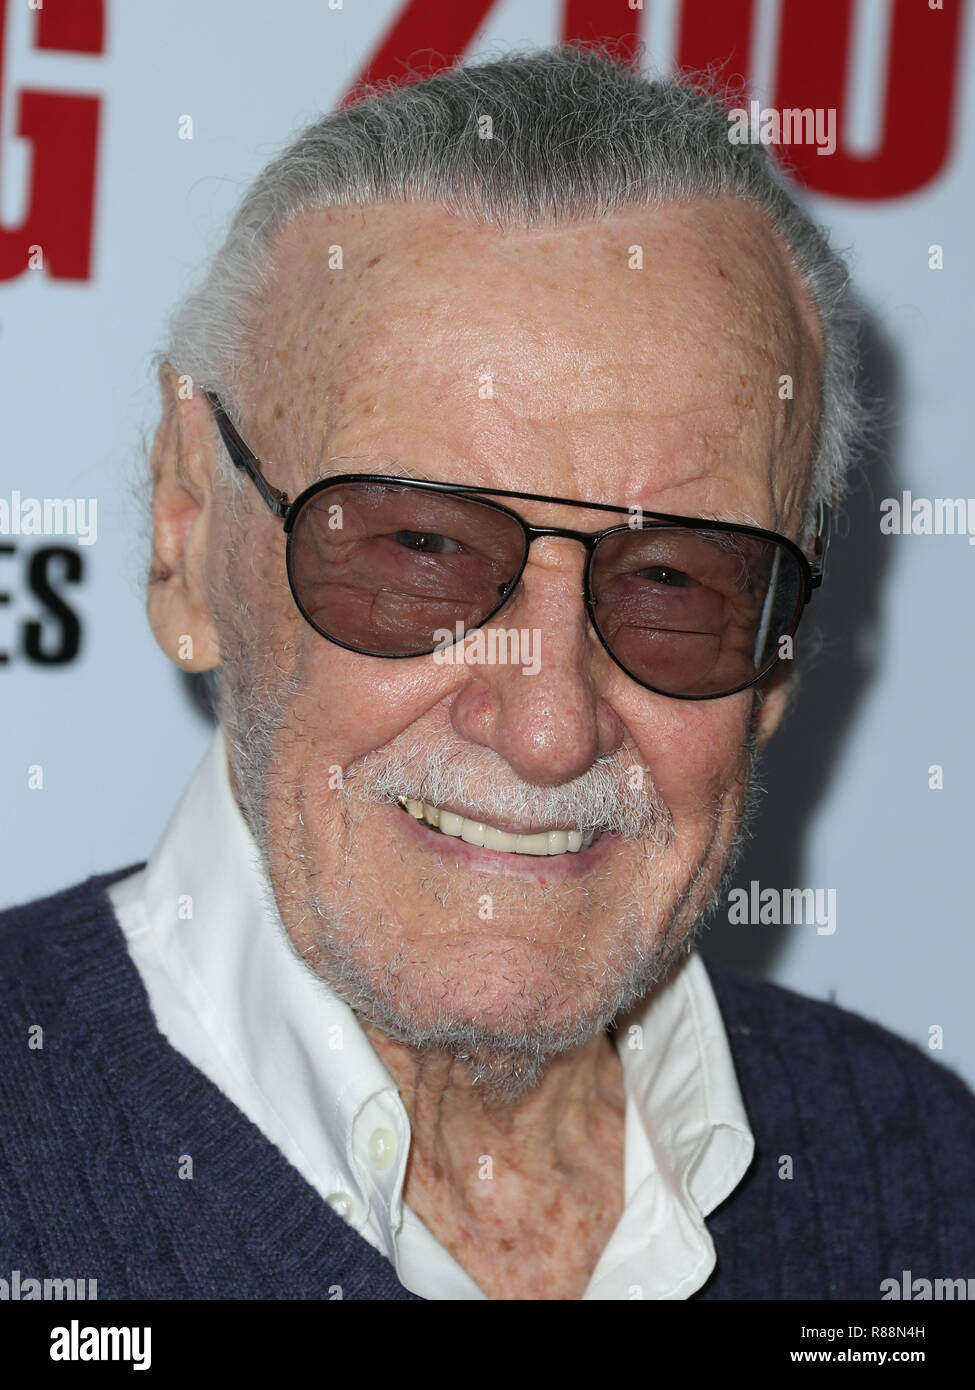 (FILE) Stan Lee Dies At 95. Stan Lee, the legendary writer, editor and publisher of Marvel Comics whose fantabulous but flawed creations made him a real-life superhero to comic book lovers everywhere, has died. He was 95. Lee, who began in the business in 1939 and created or co-created Black Panther, Spider-Man, the X-Men, the Mighty Thor, Iron Man, the Fantastic Four, the Incredible Hulk, Daredevil and Ant-Man, among countless other characters, died early Monday morning at Cedars-Sinai Medical Center in Los Angeles, a family representative told The Hollywood Reporter. LOS ANGELES, CA, USA - F - Stock Image